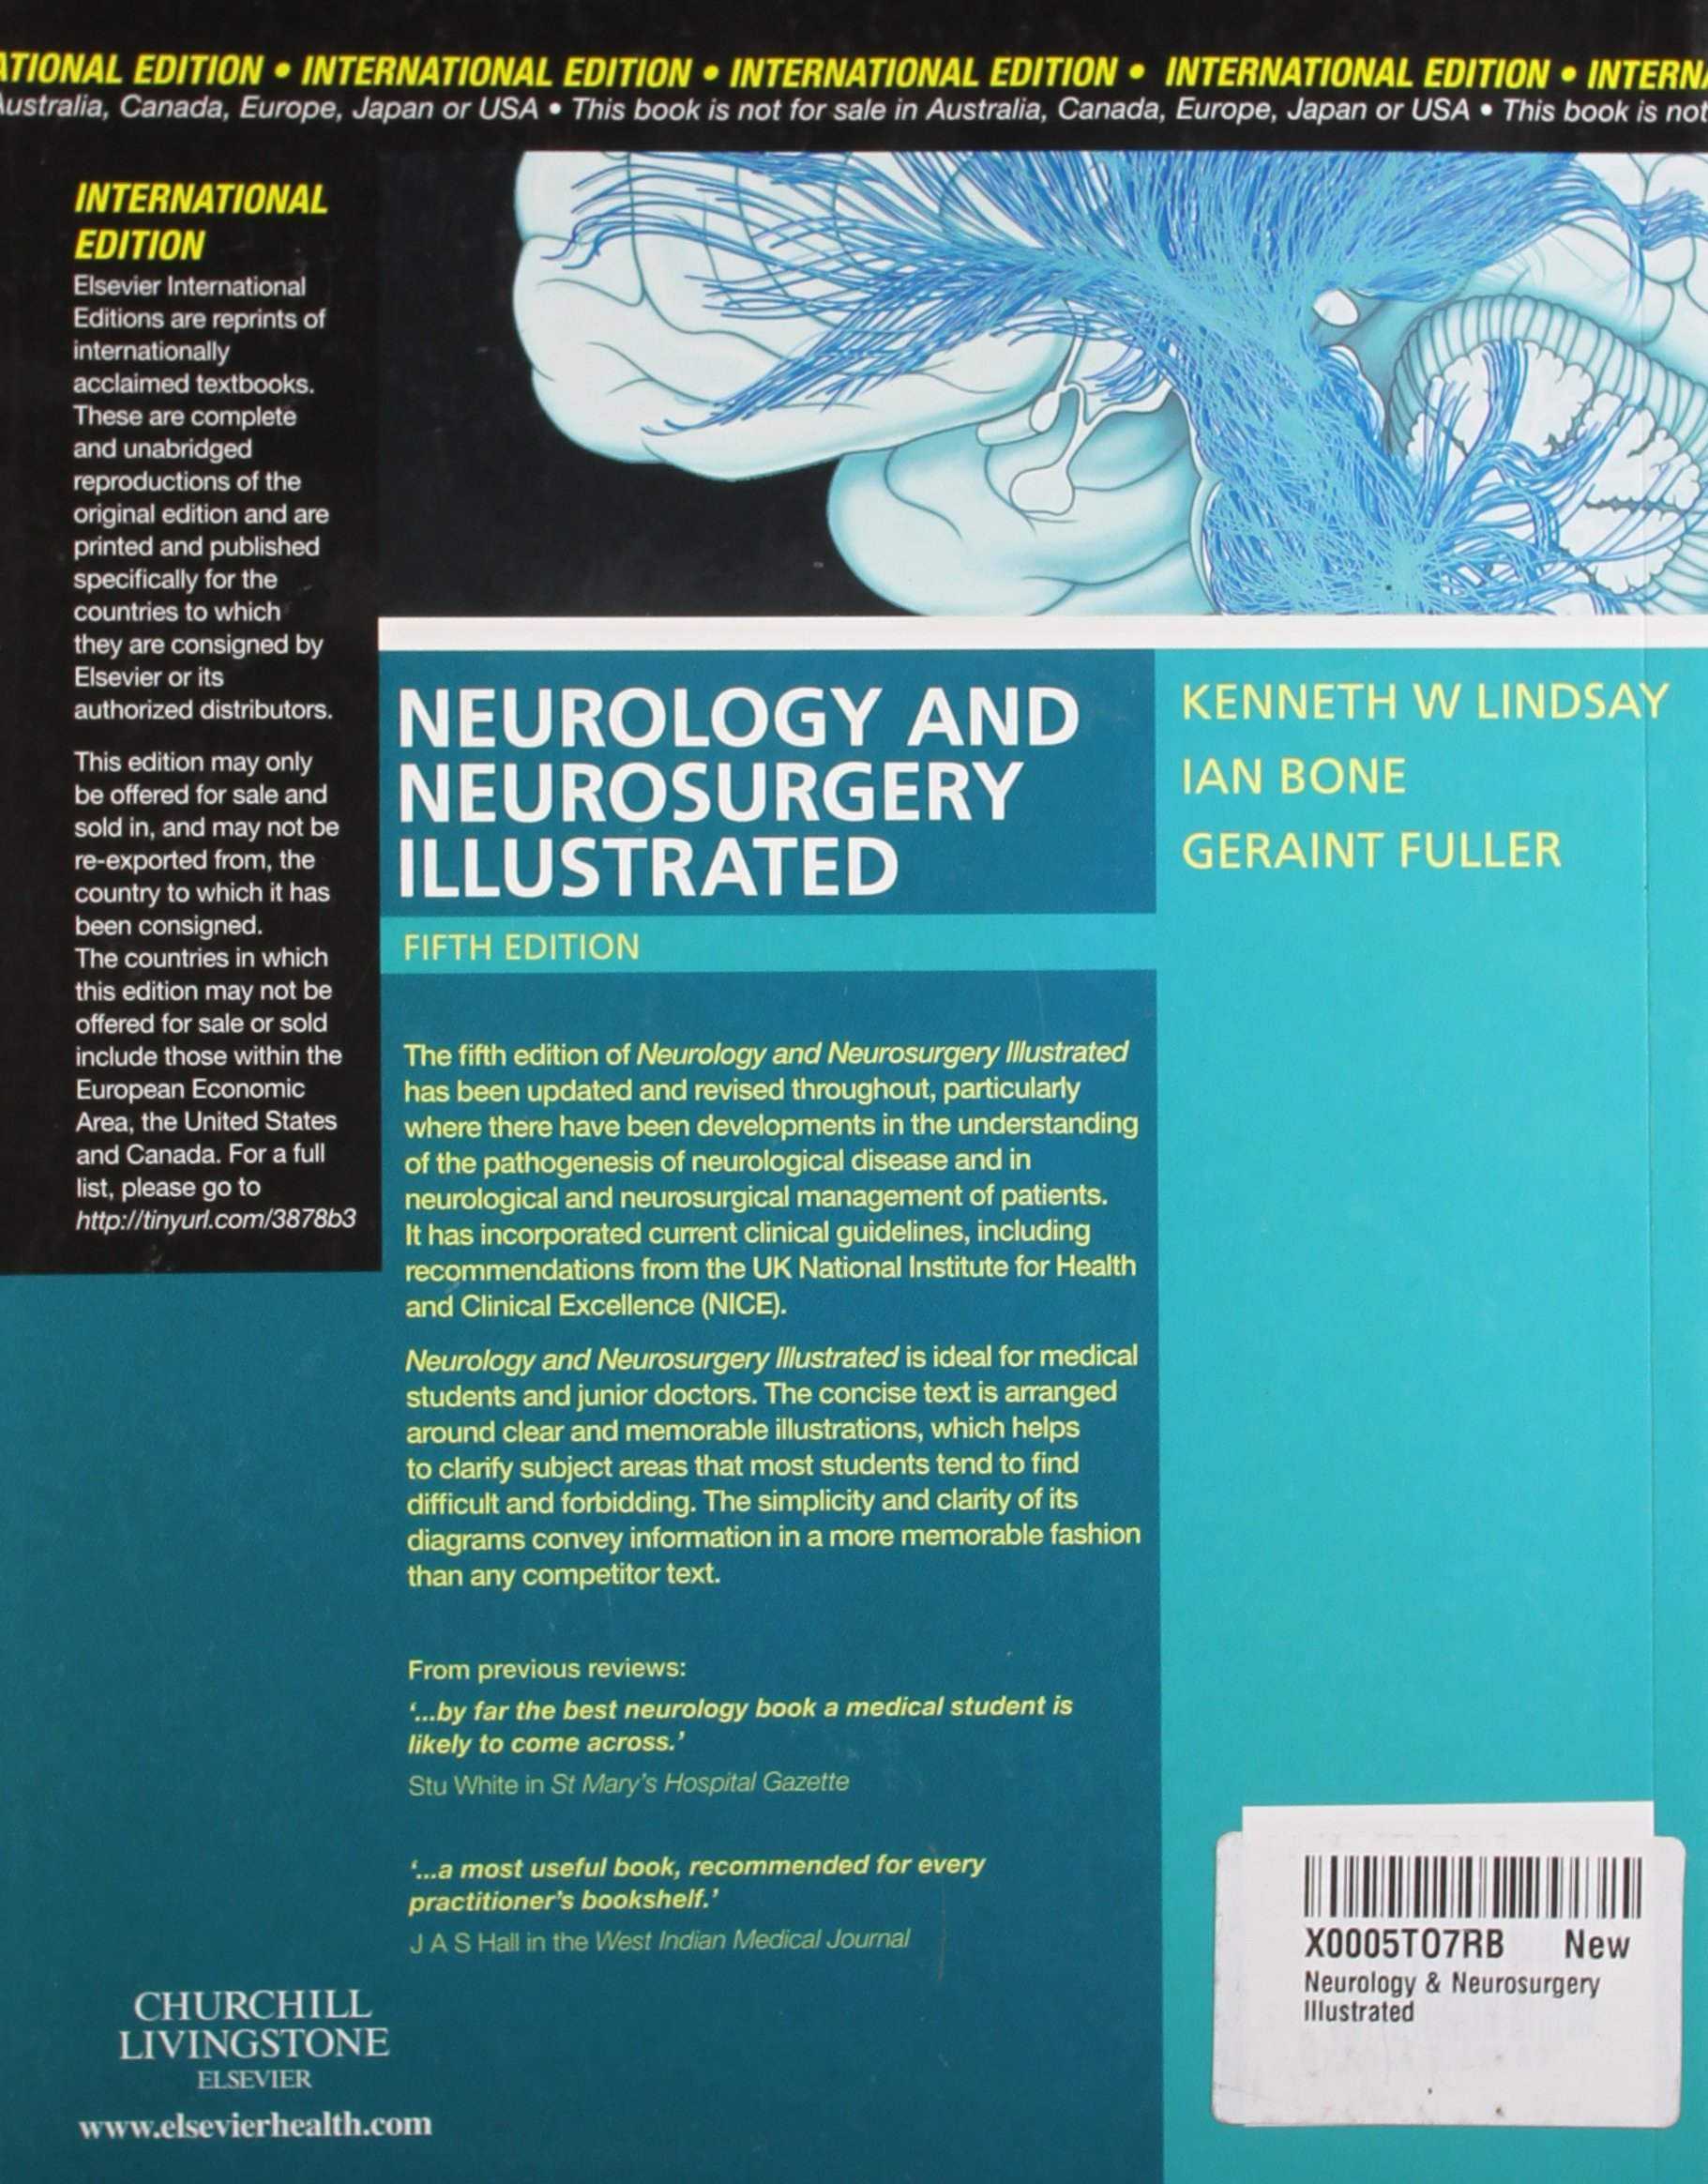 Buy neurology and neurosurgery illustrated international edition buy neurology and neurosurgery illustrated international edition book online at low prices in india neurology and neurosurgery illustrated fandeluxe Images